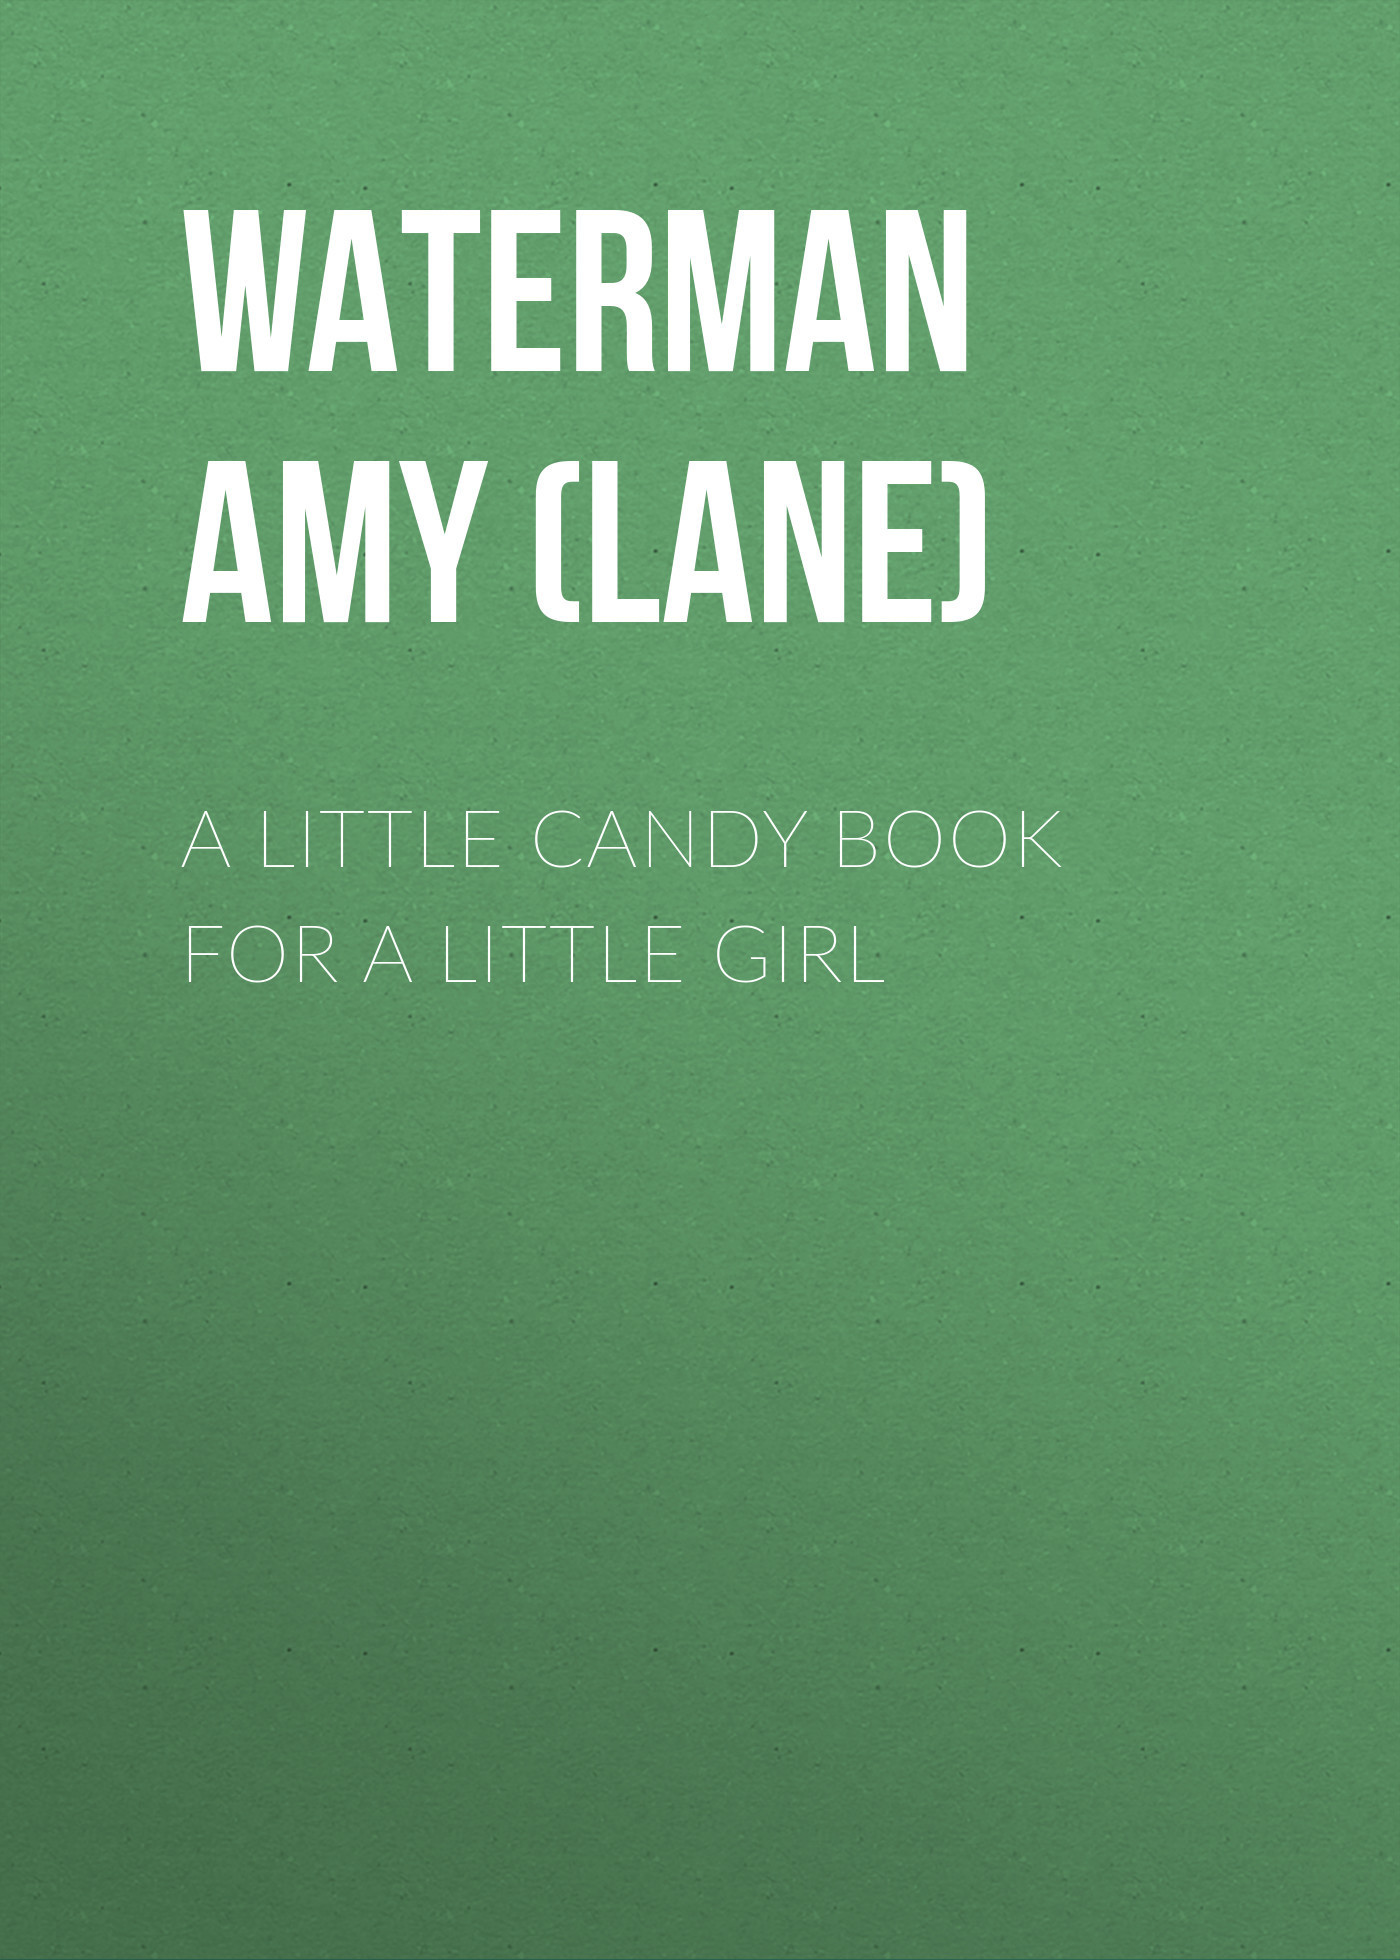 Waterman Amy Harlow (Lane) A Little Candy Book for a Little Girl babar s little girl